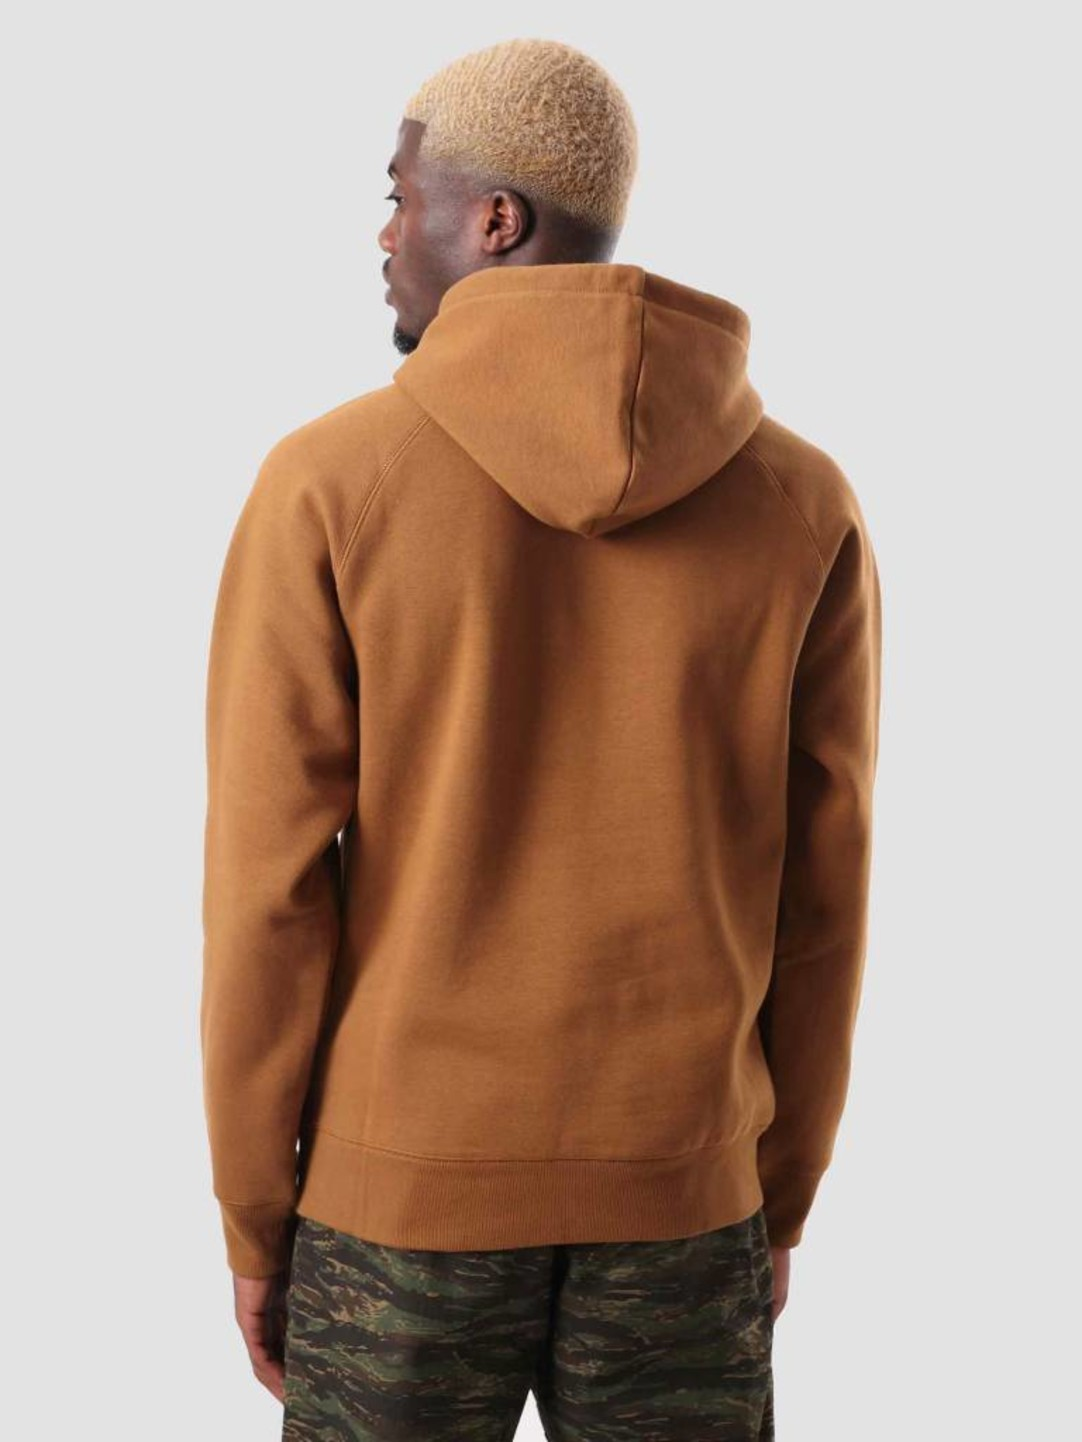 Carhartt WIP Carhartt WIP Chase Hoodie Hamilton Brown Gold I026384-HZ90